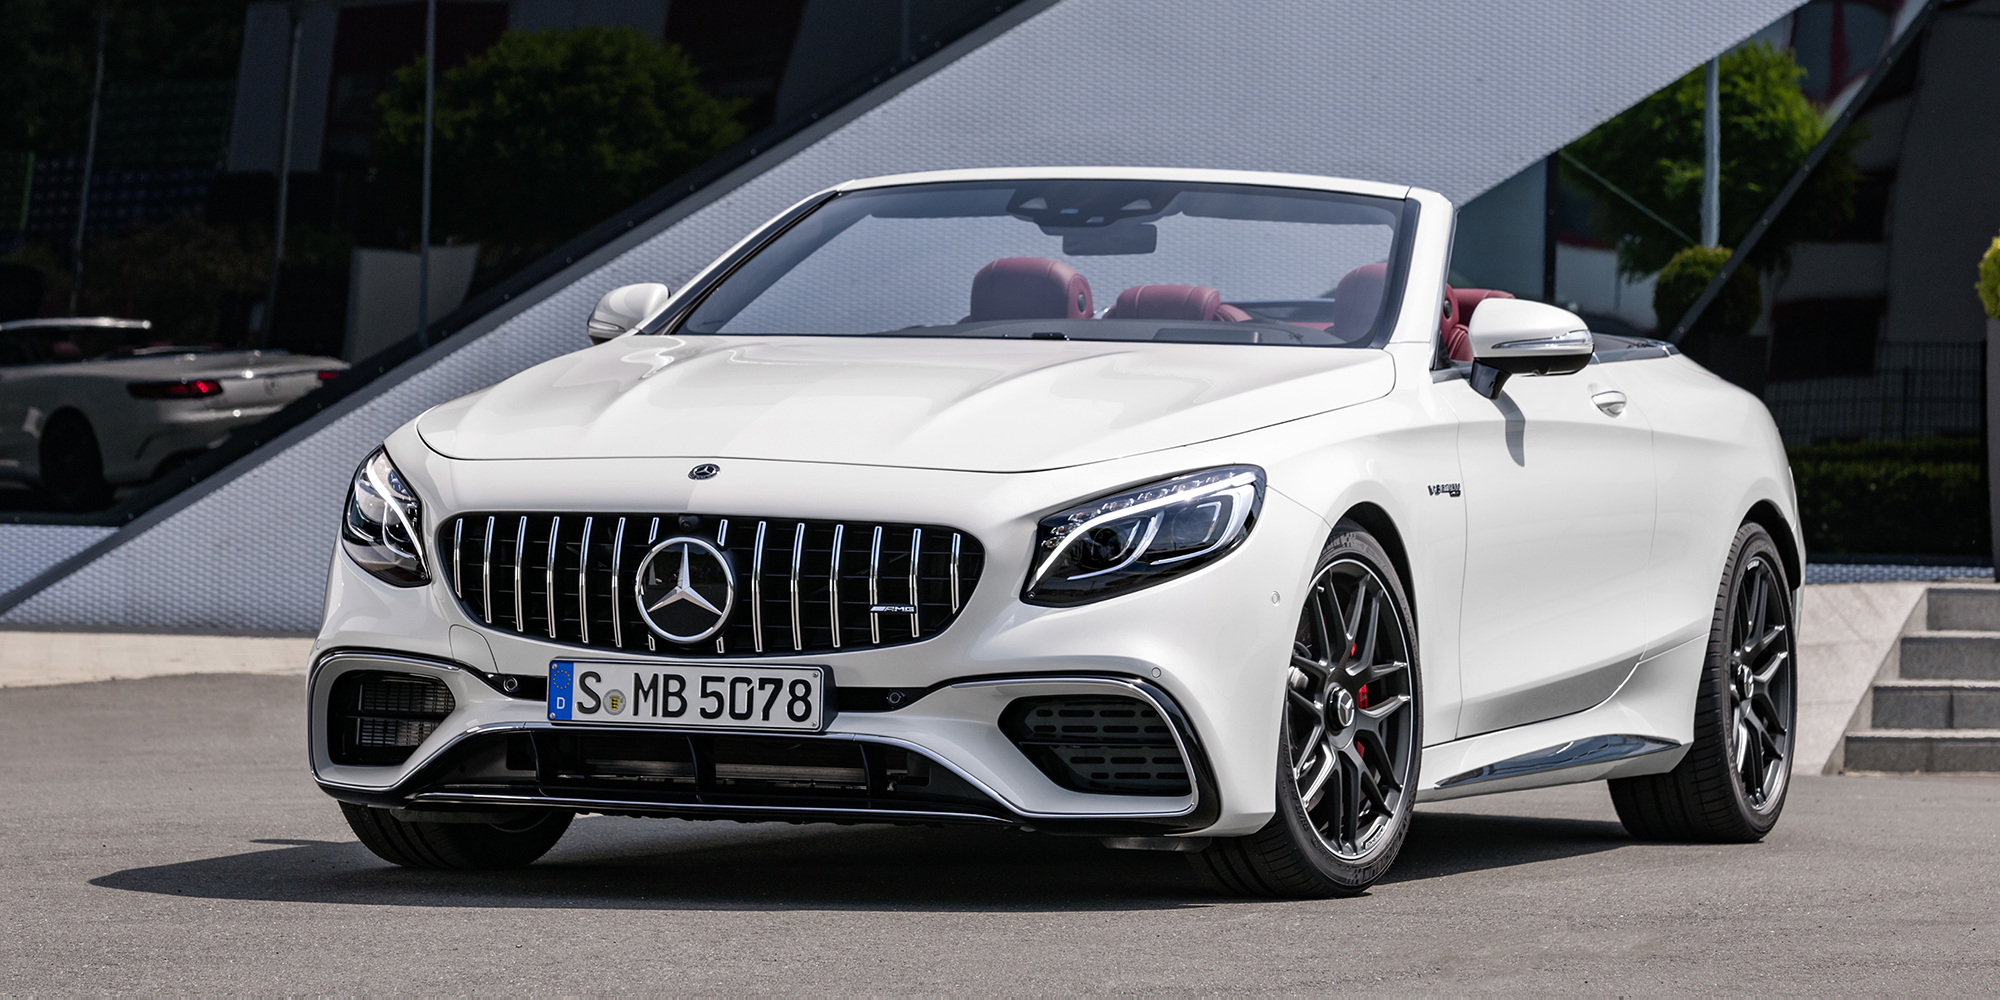 2018 mercedes benz s class coupe cabriolet revealed here in april 2018 photos. Black Bedroom Furniture Sets. Home Design Ideas